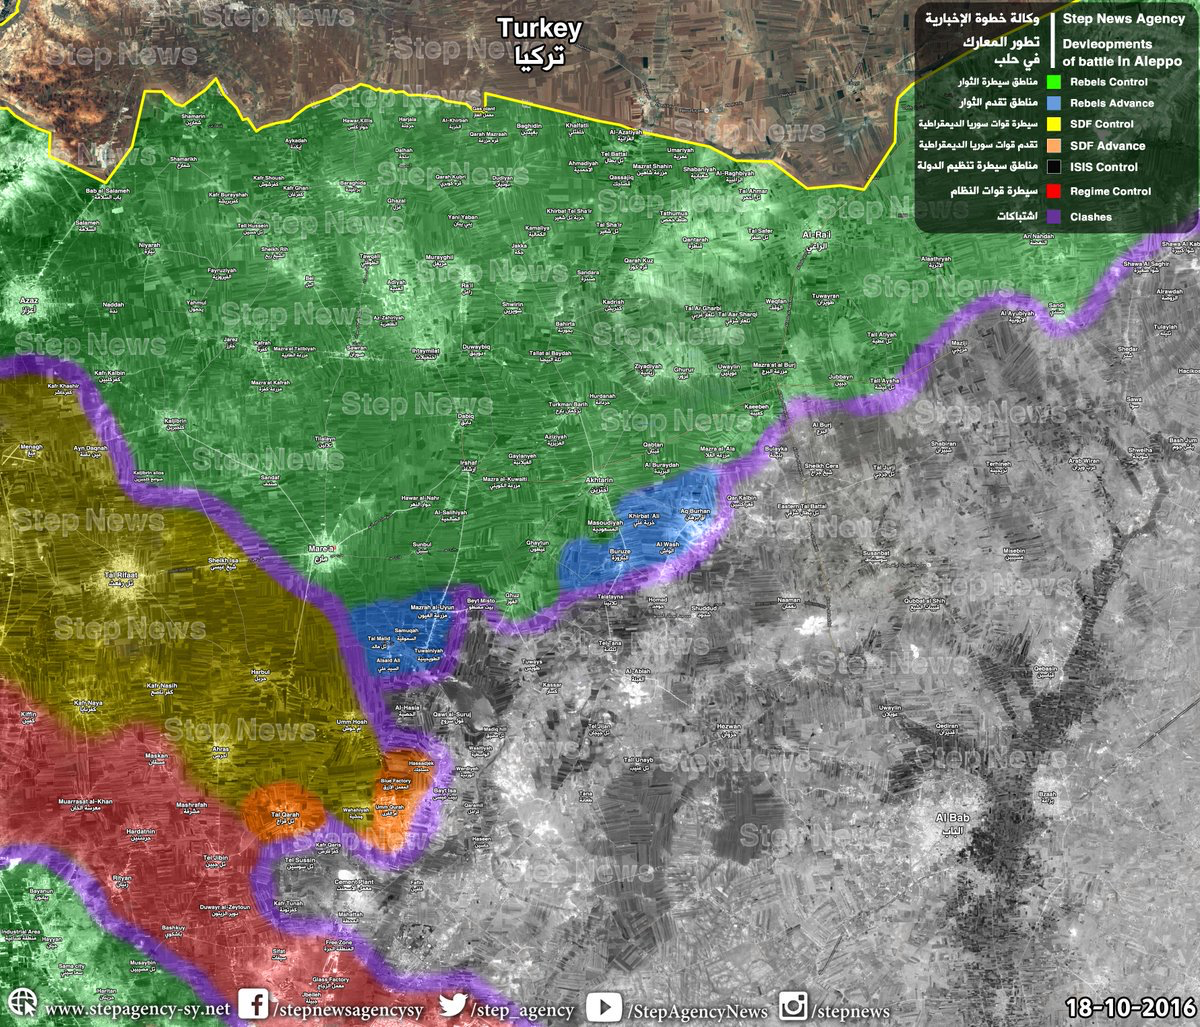 #Syria Expect clashes btw #FSA & #YPG along #Aleppo frontlines #FSA demand #YPG to withdraw from Tal Rifaat in 48h youtube.com/watch?v=VuS7lA…